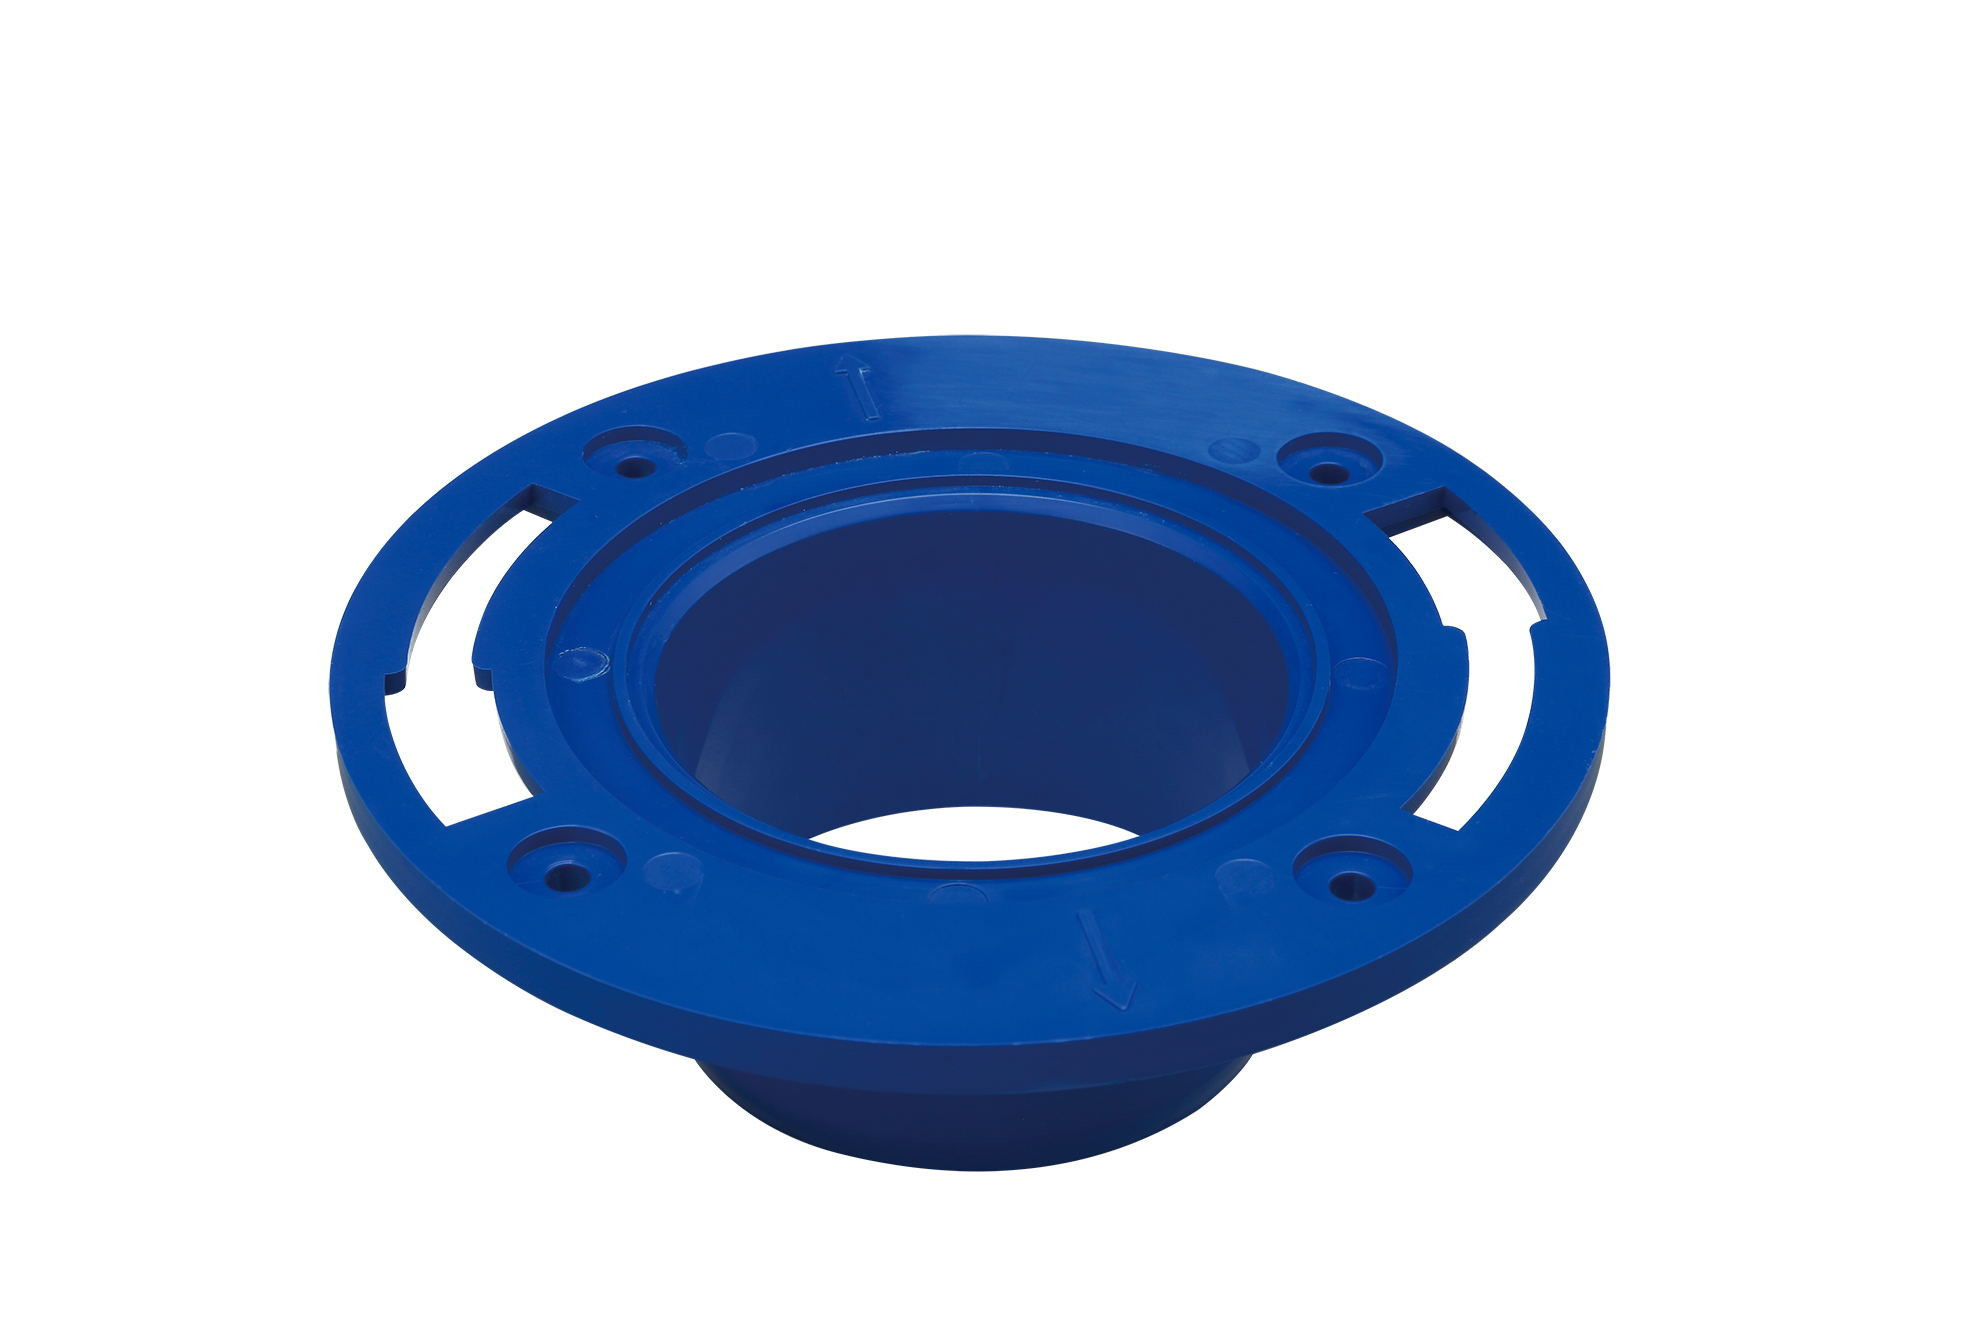 Dark Blue 3 Inch / 4 Inch Toilet Seal Flange PP Material For Toilet ...